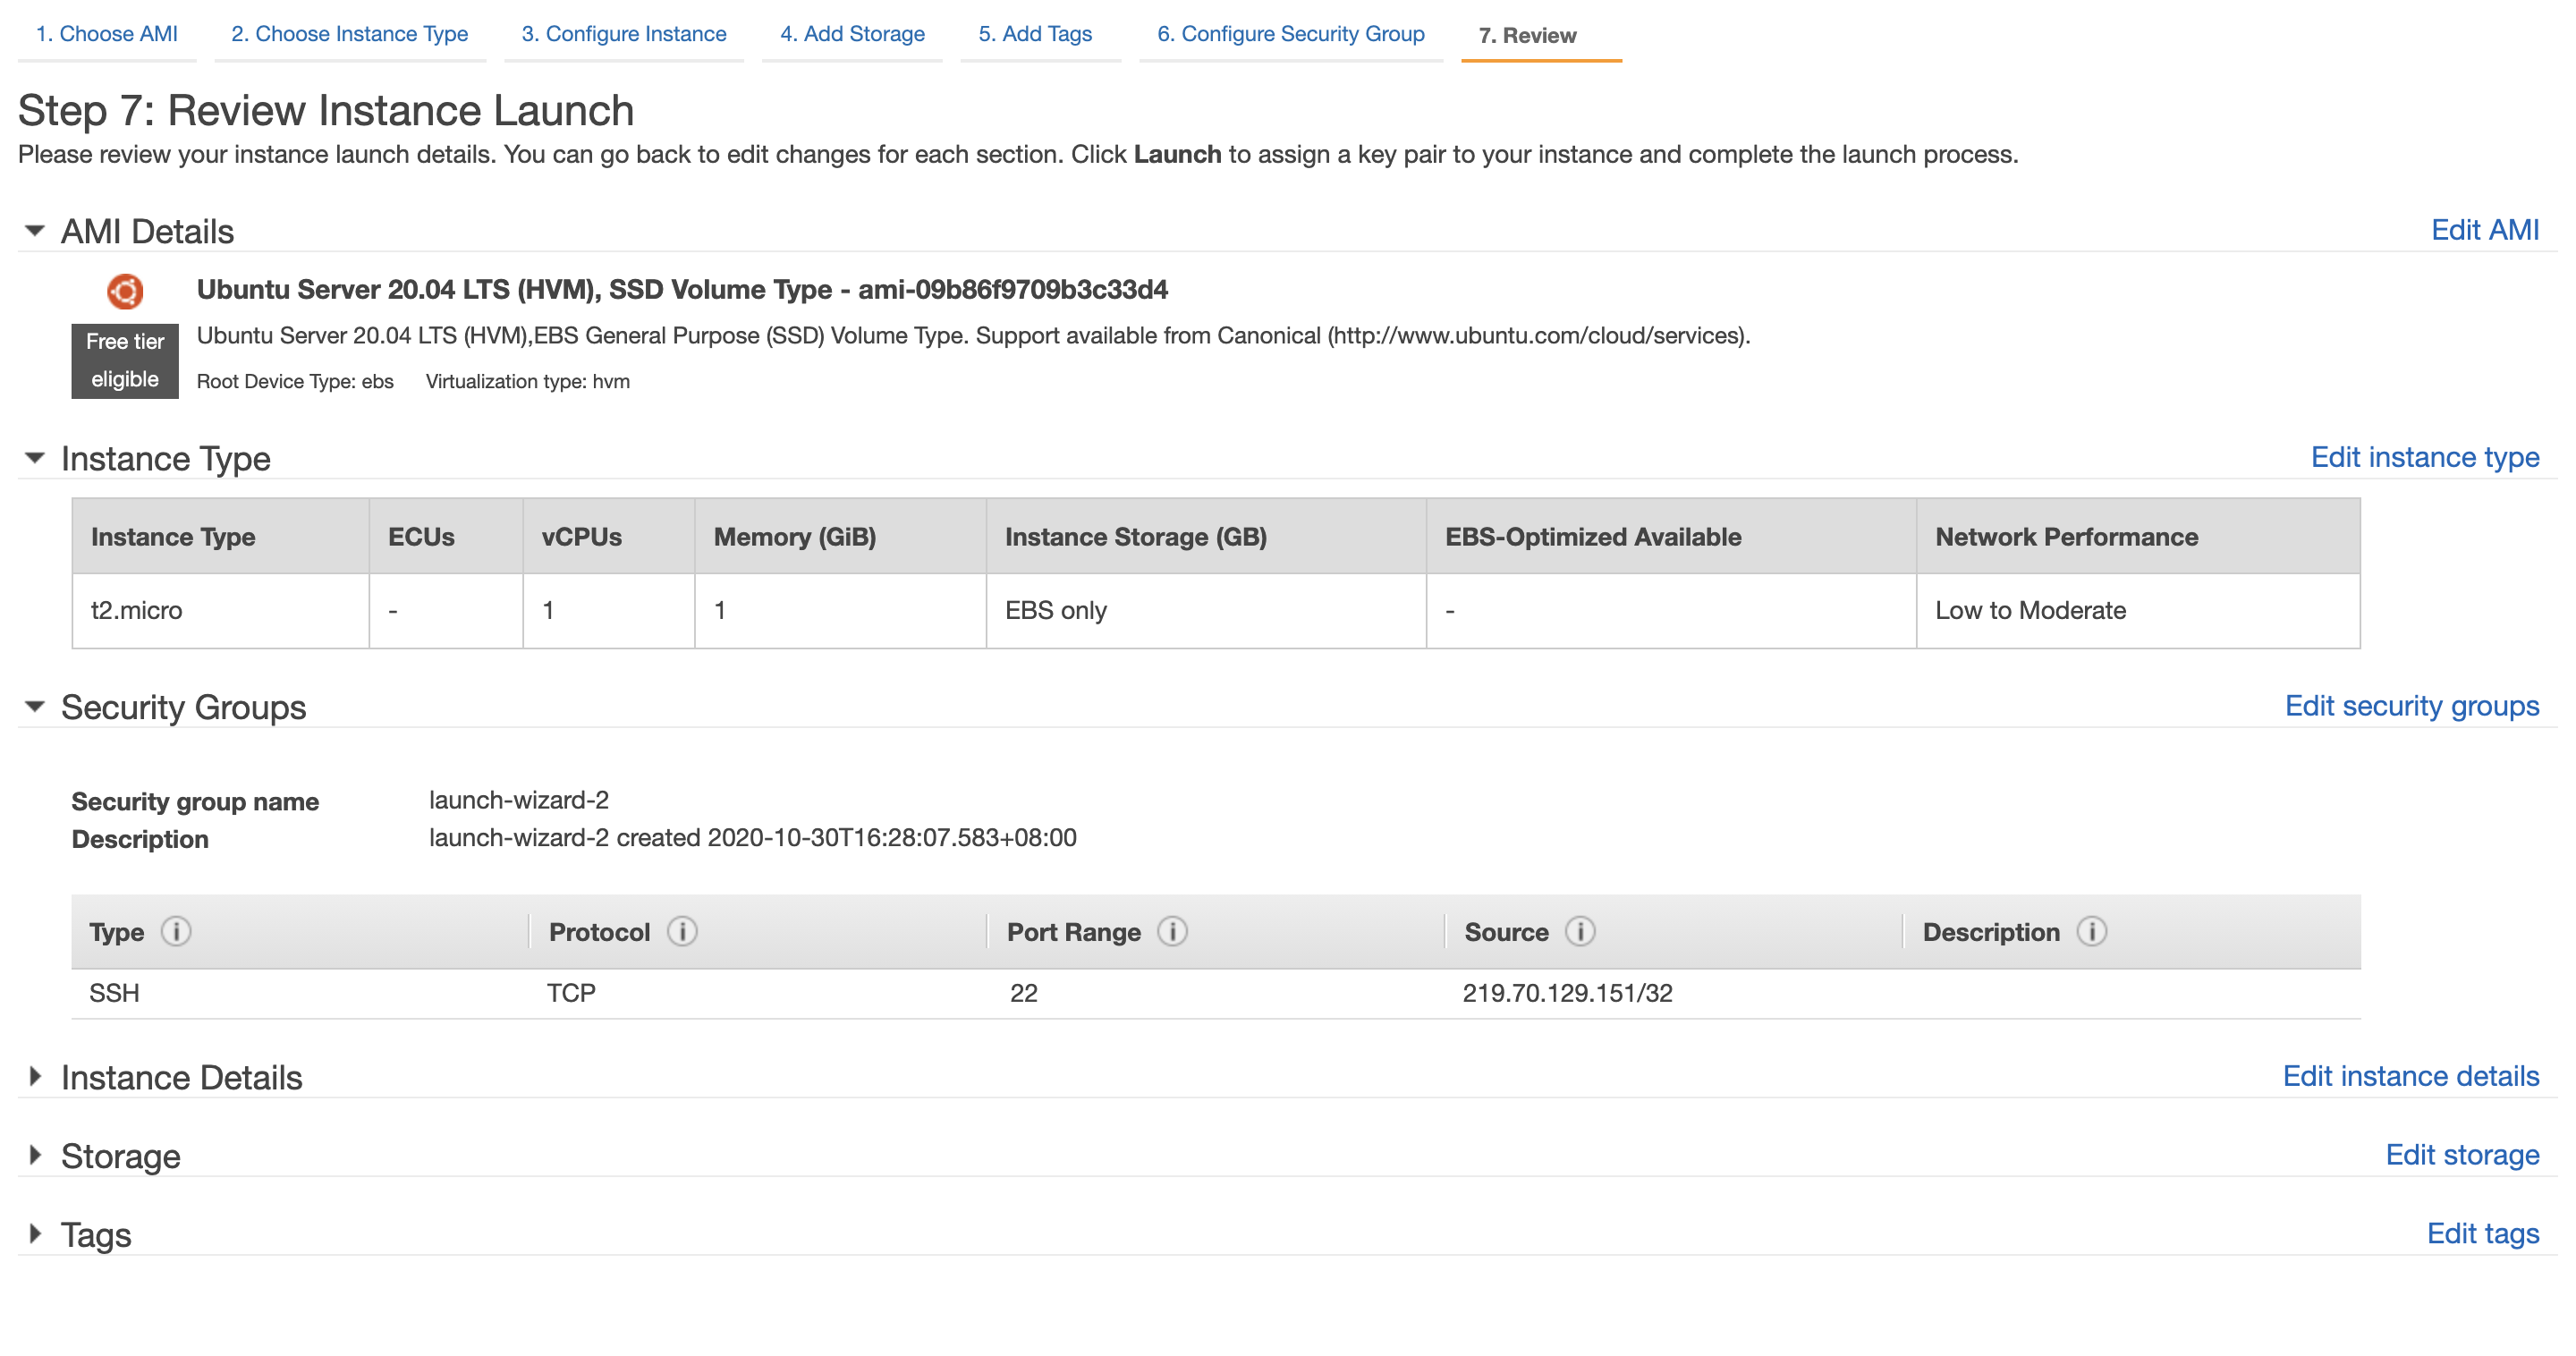 Step 7: Review Instance Launch